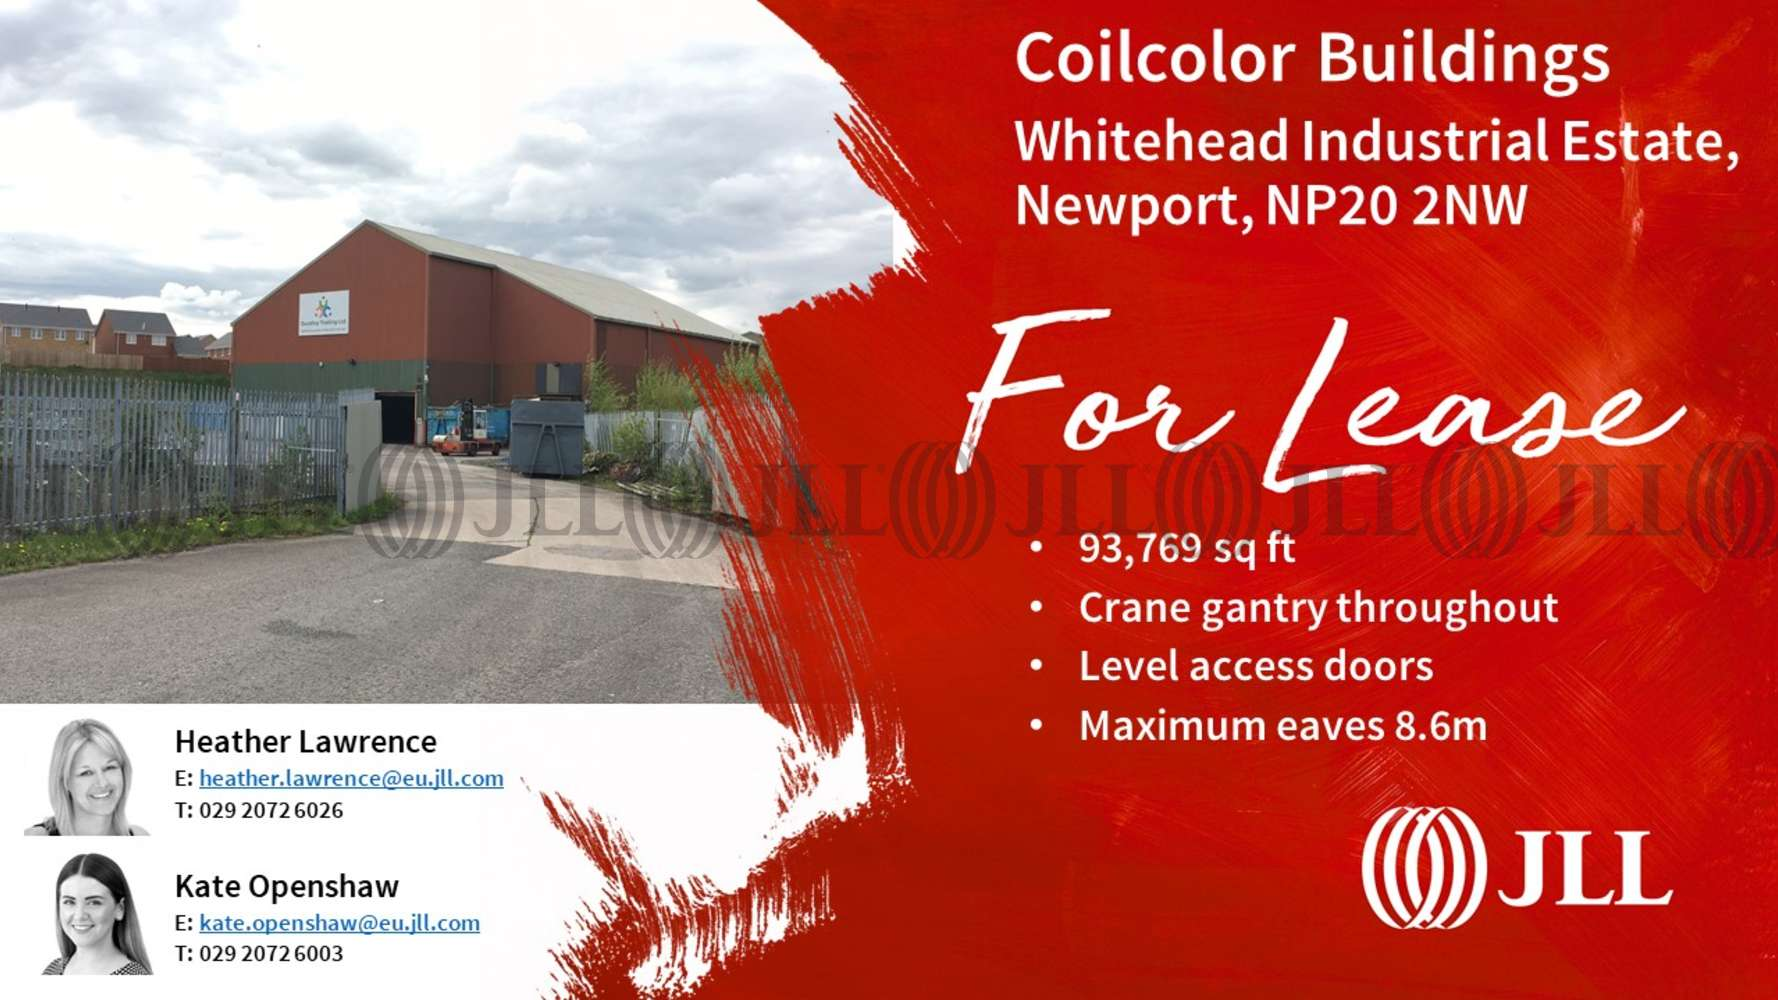 Industrial Newport, NP20 2NW - Coilcolor Buildings